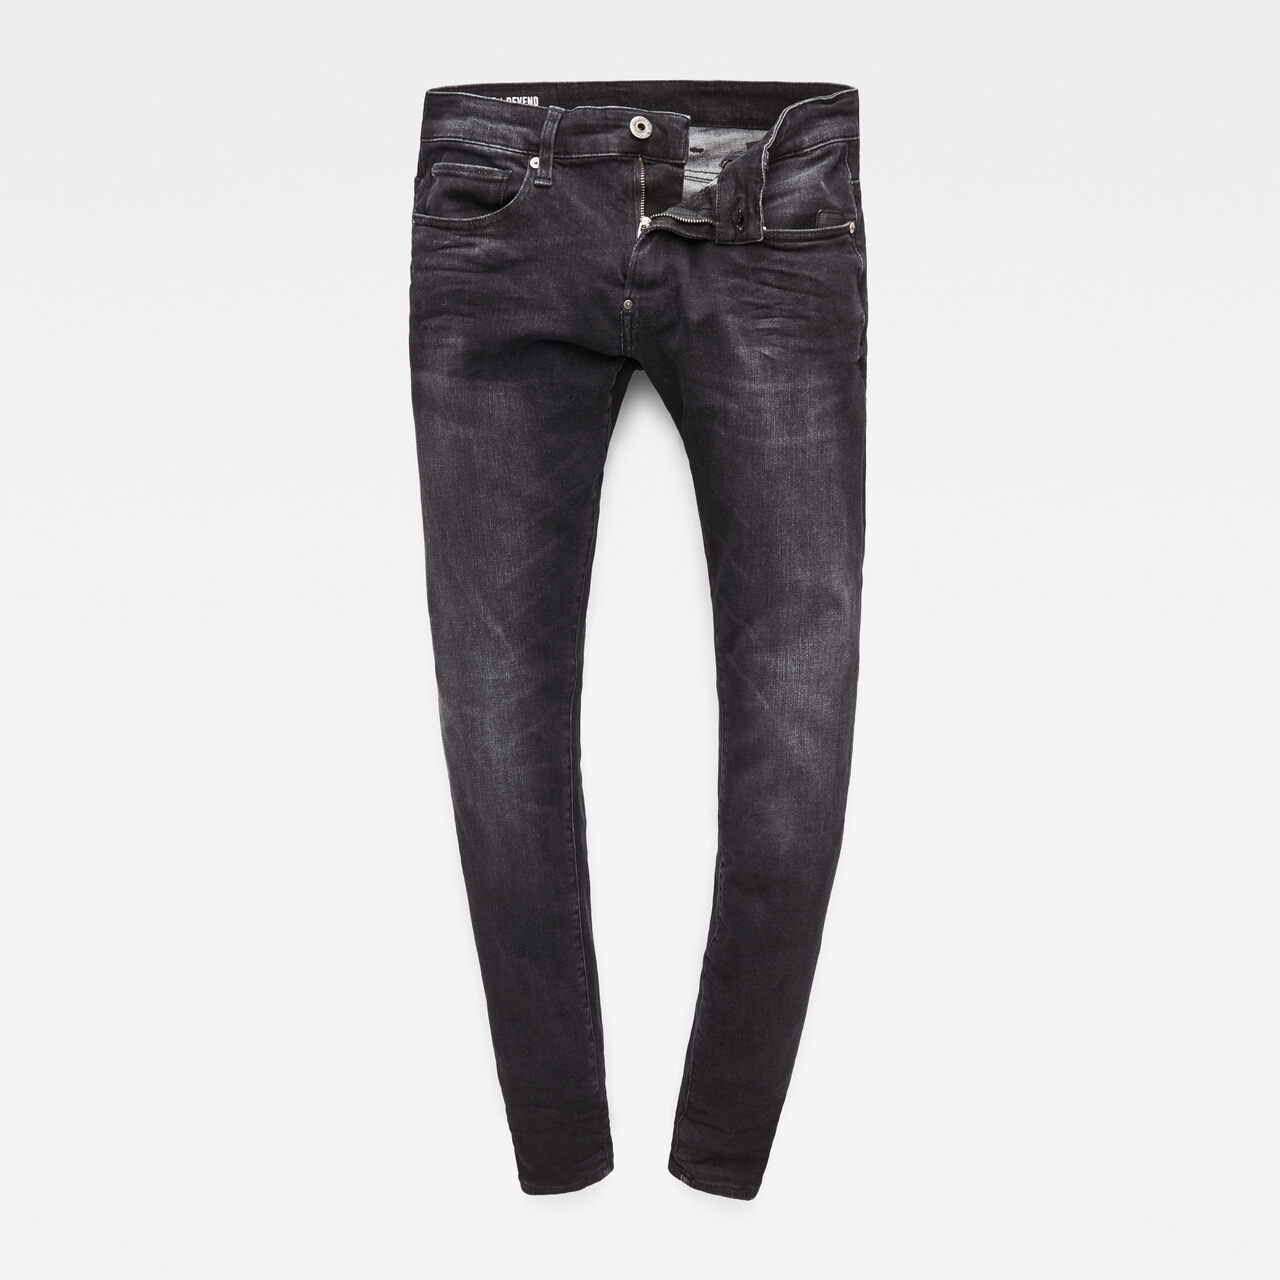 G-STAR - JEANS / REVEND